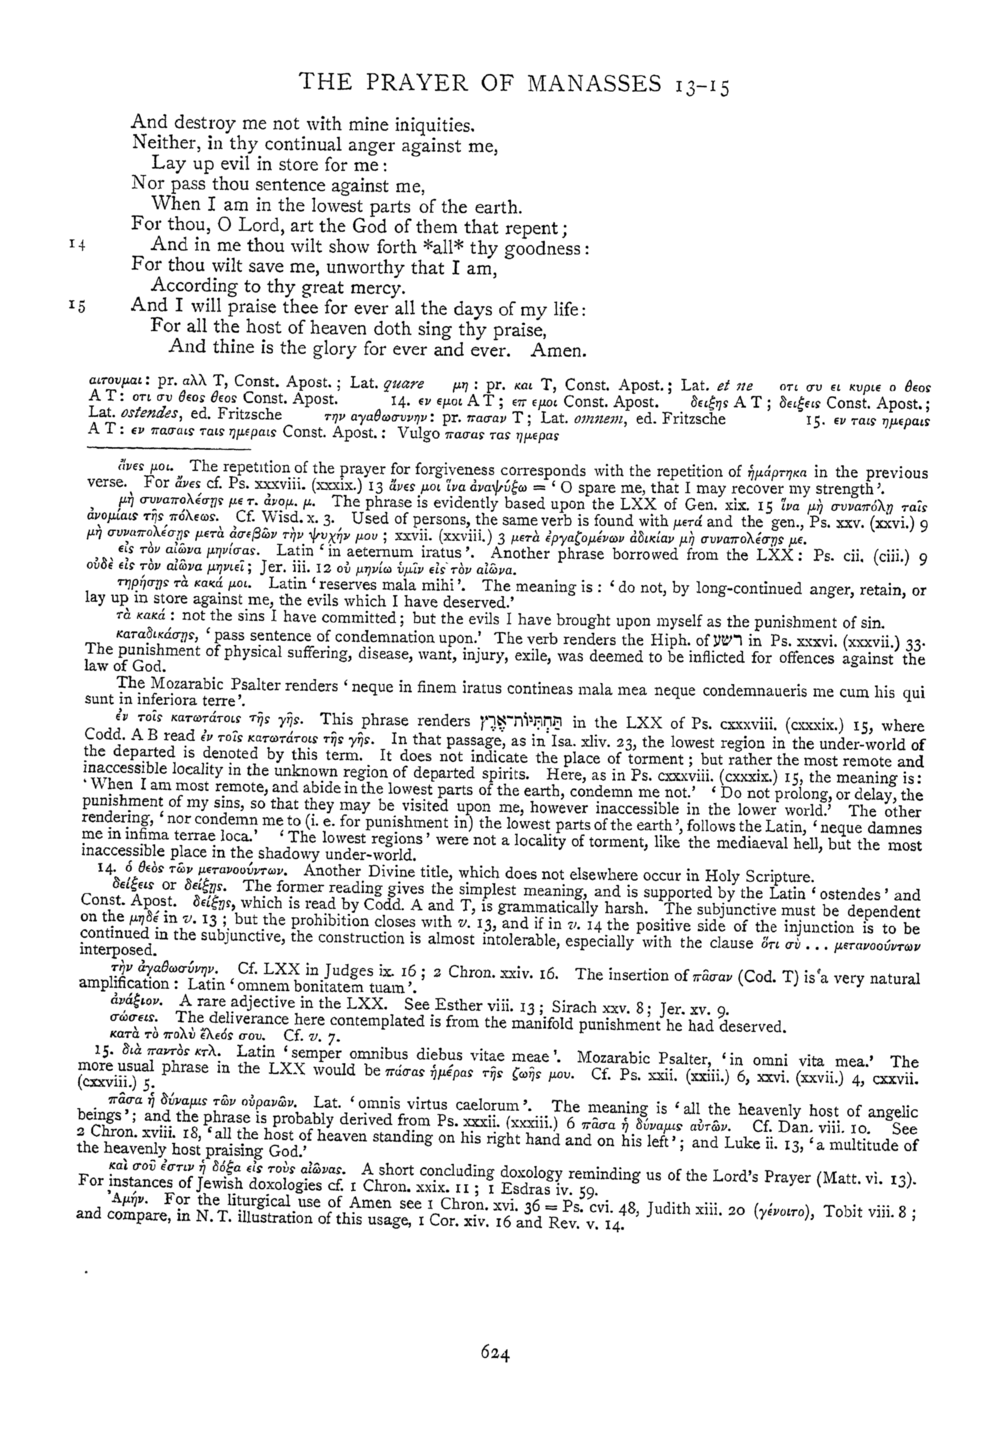 Image of page 624